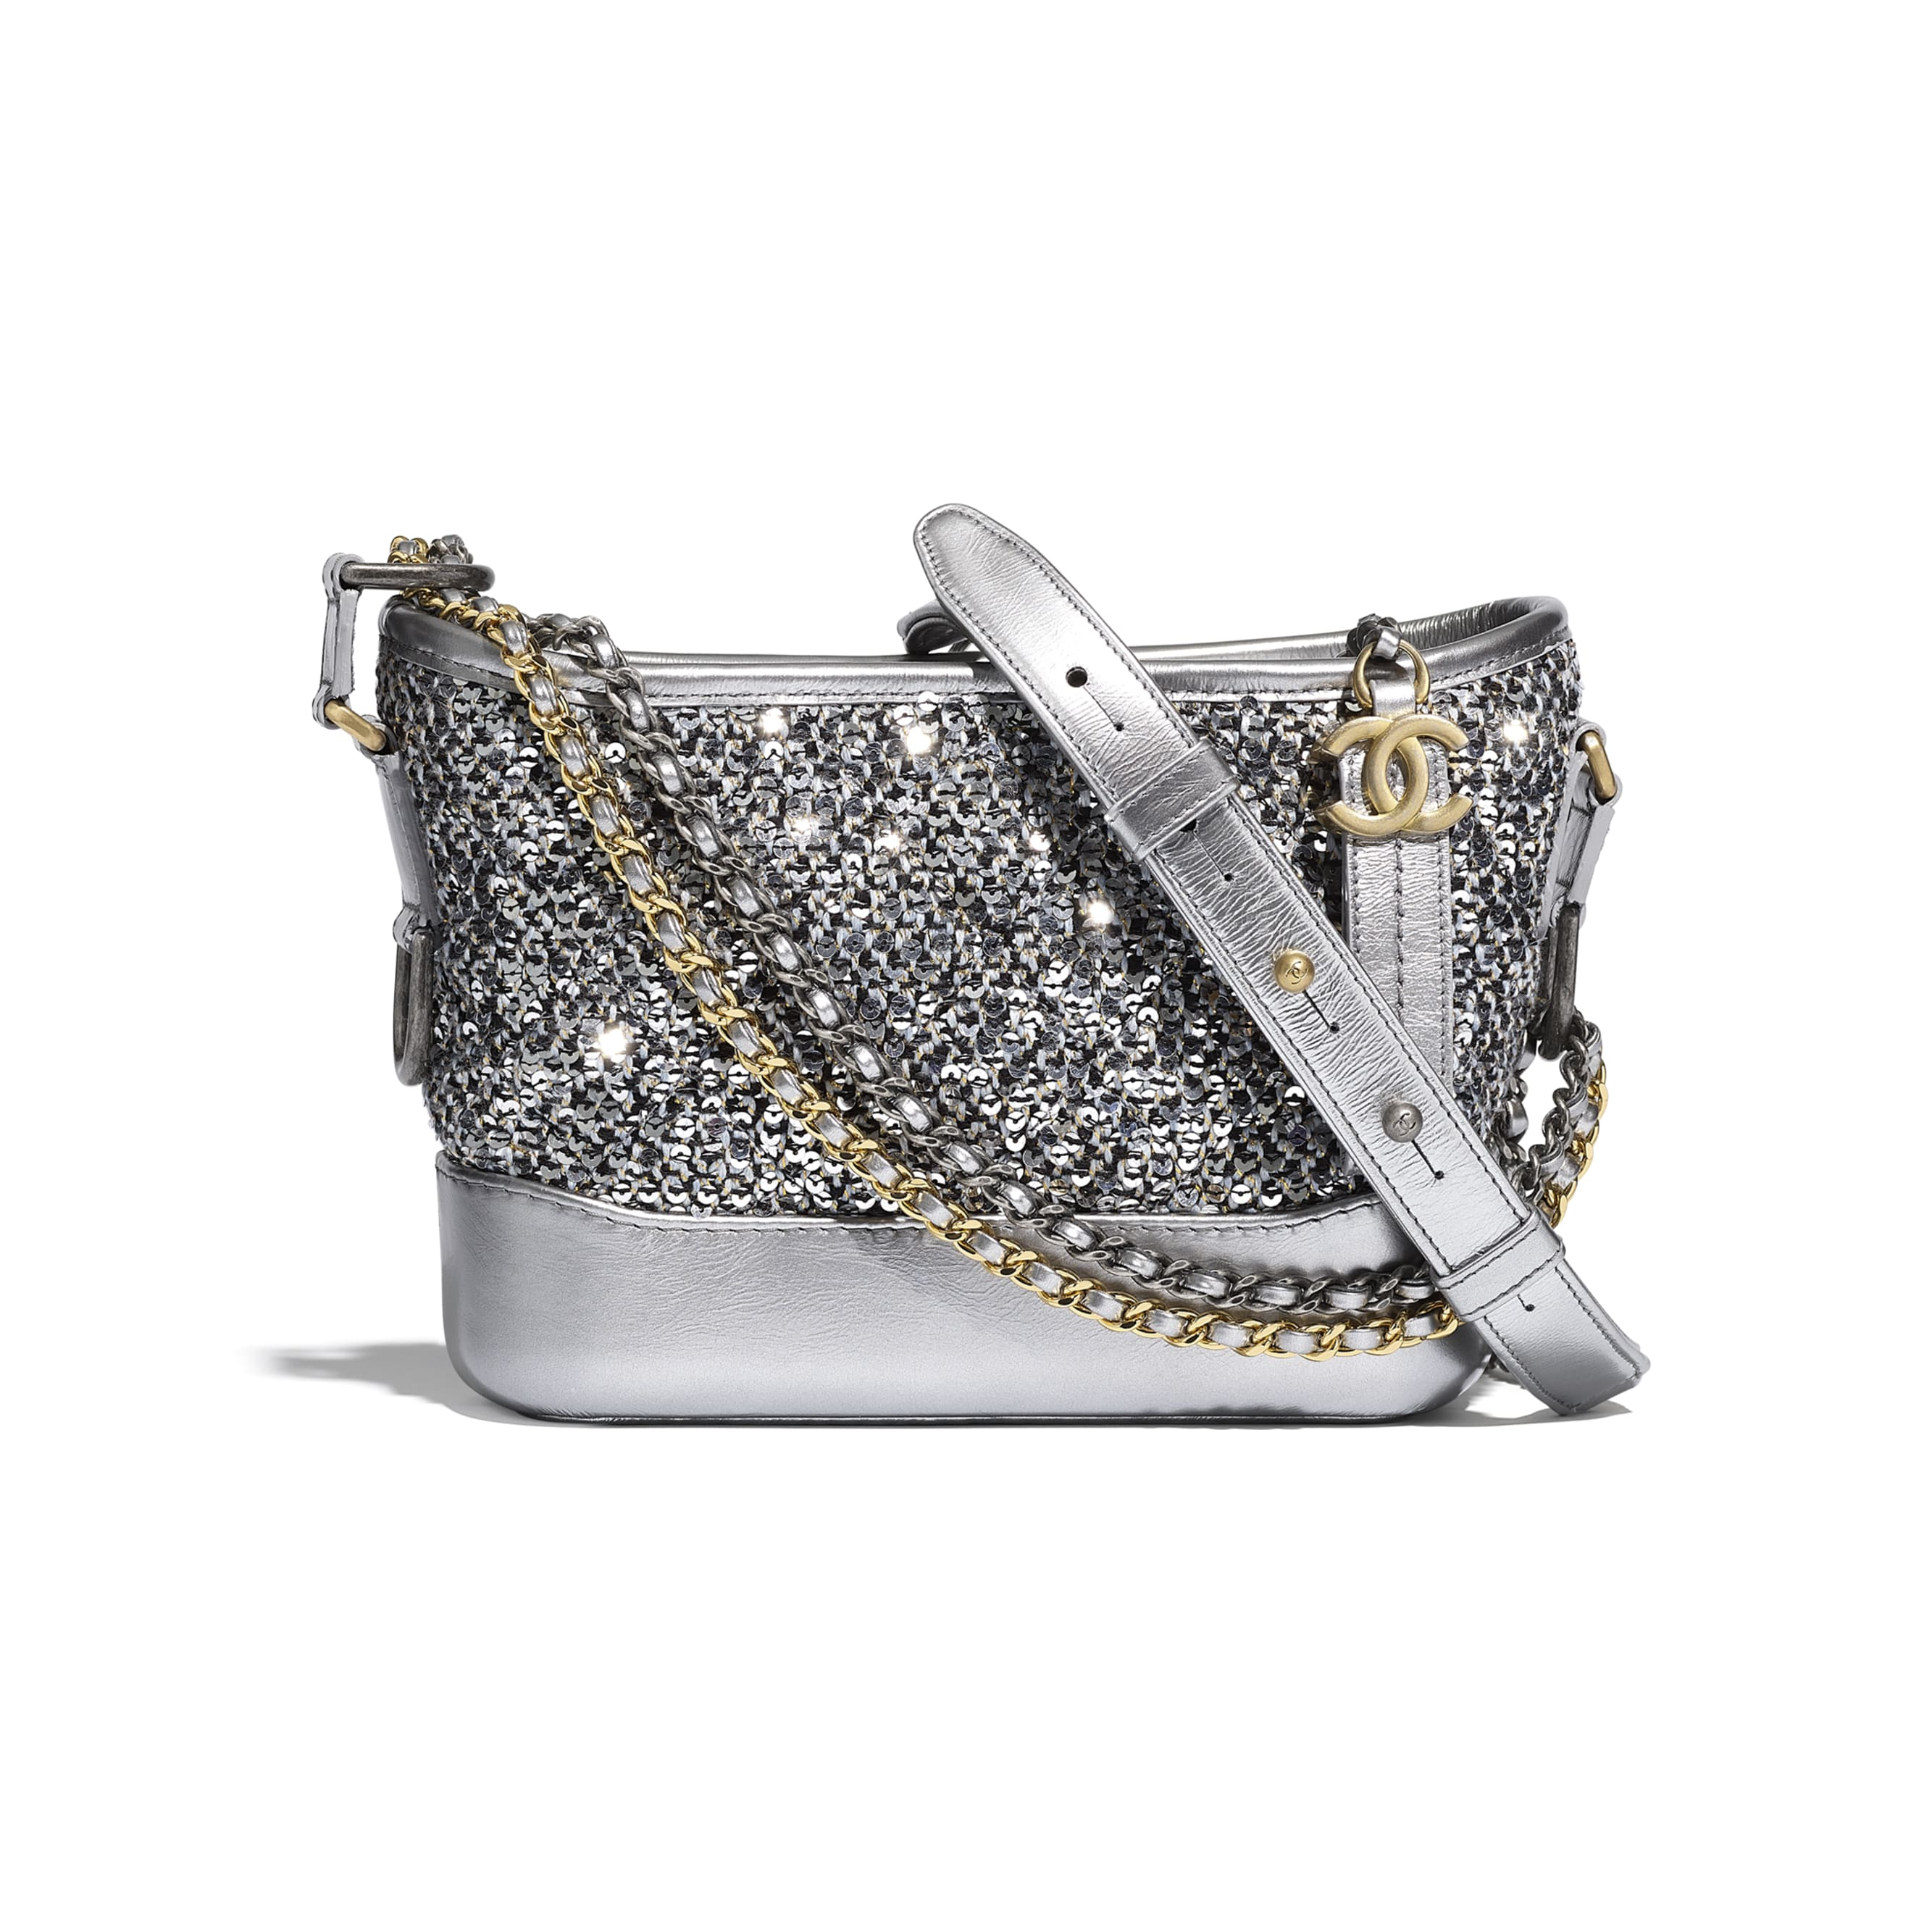 CHANEL'S GABRIELLE Small Hobo Bag - Silver, Black & Gold - Tweed, Sequins, Gold-Tone, Silver-Tone & Ruthenium-Finish Metal - CHANEL - Default view - see standard sized version